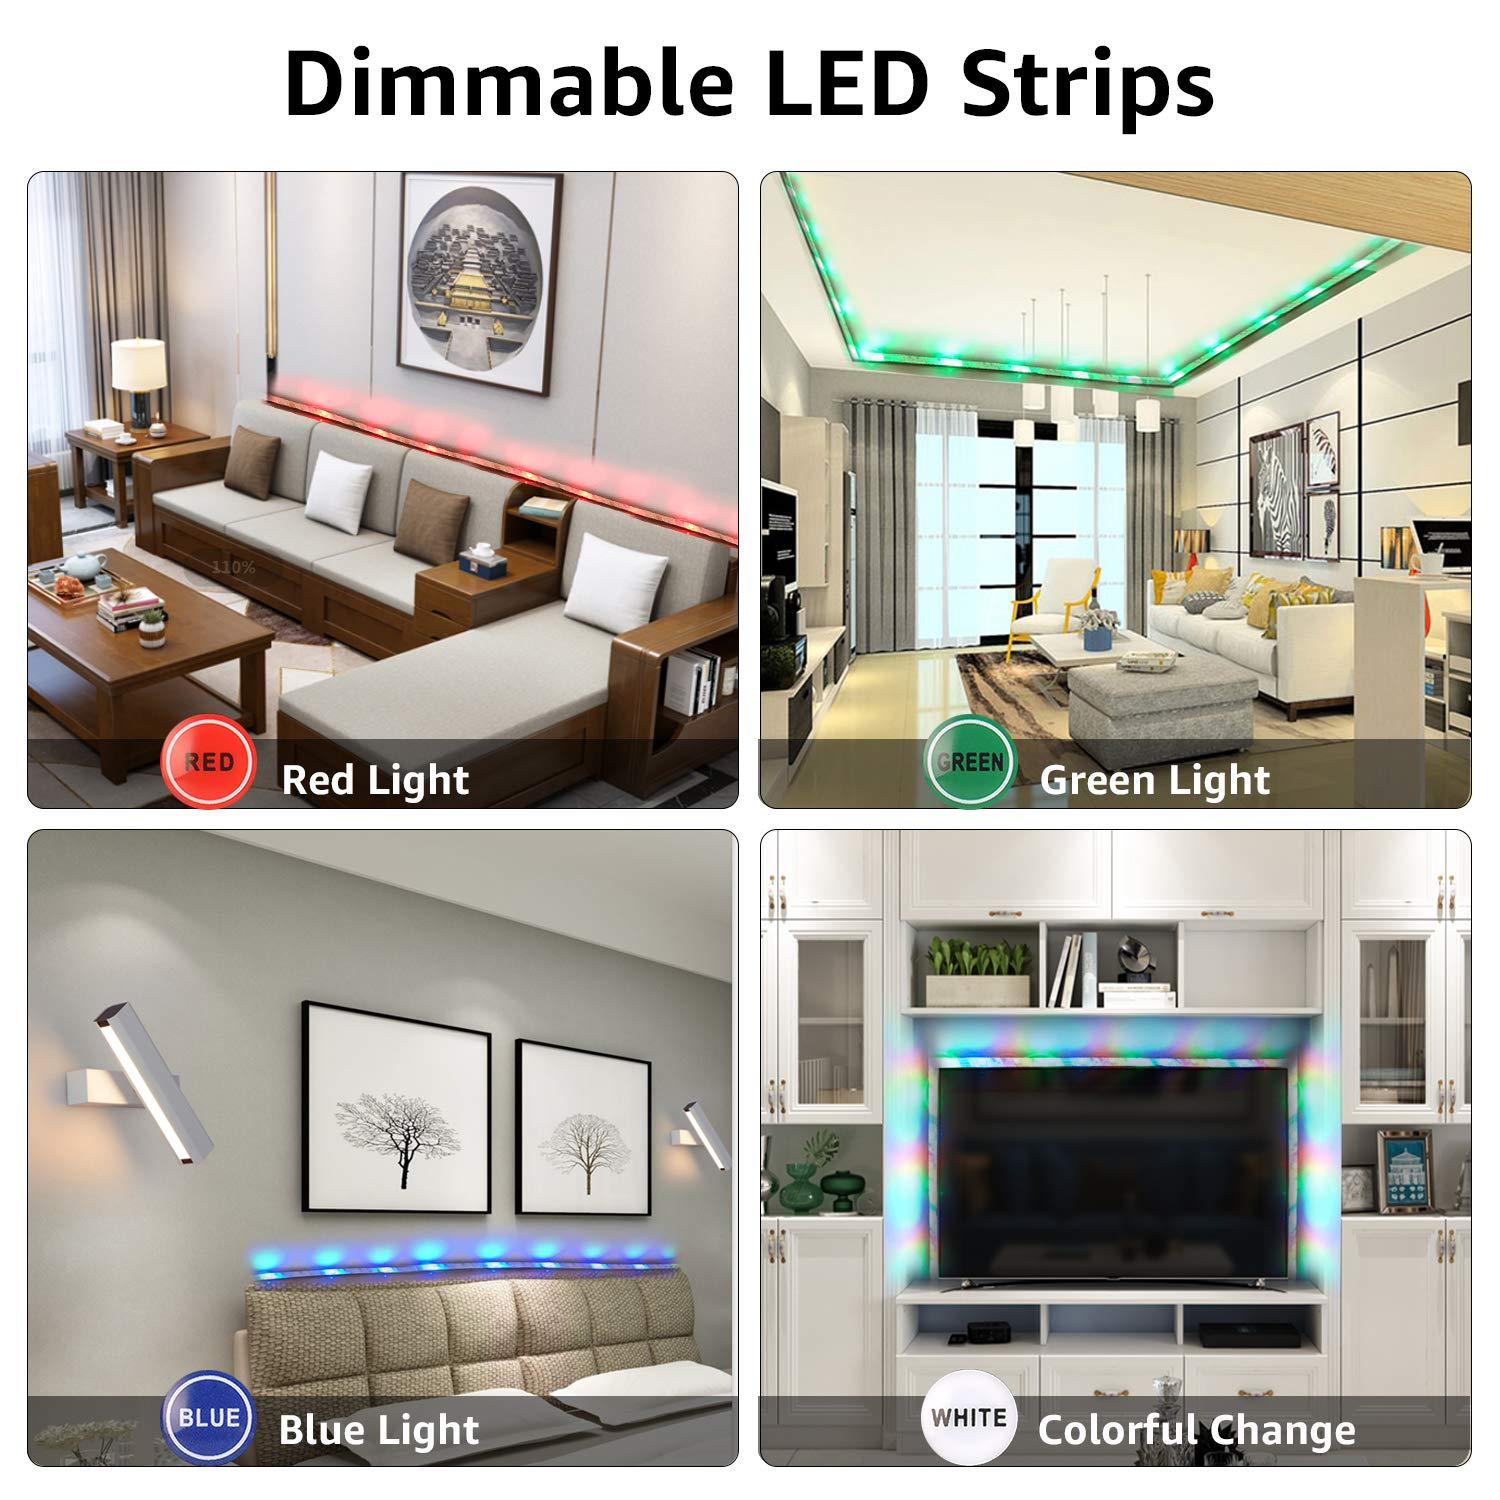 LED Strip Lights, HeySuun 32.8FT/10M 20Key RGB Light Strips, Music Sync Color Changing, Rope Light 600 SMD 3528 LED, IR Remote Controller Flexible Strip for Home Party Bedroom DIY Party Indoor Outdoor by HeySuun (Image #3)